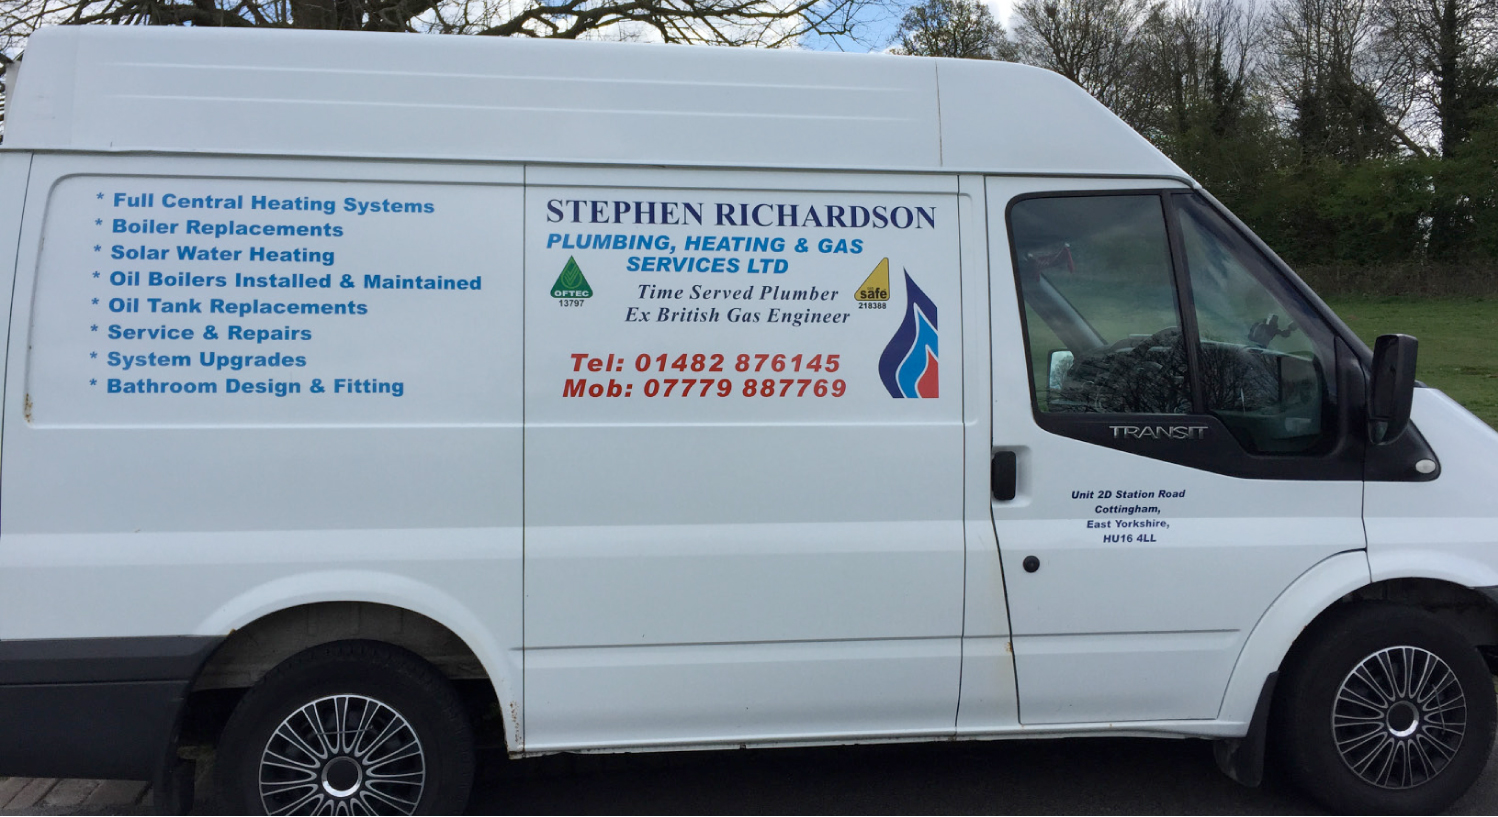 S Richardson Plumbing & Heating Services Cottingham